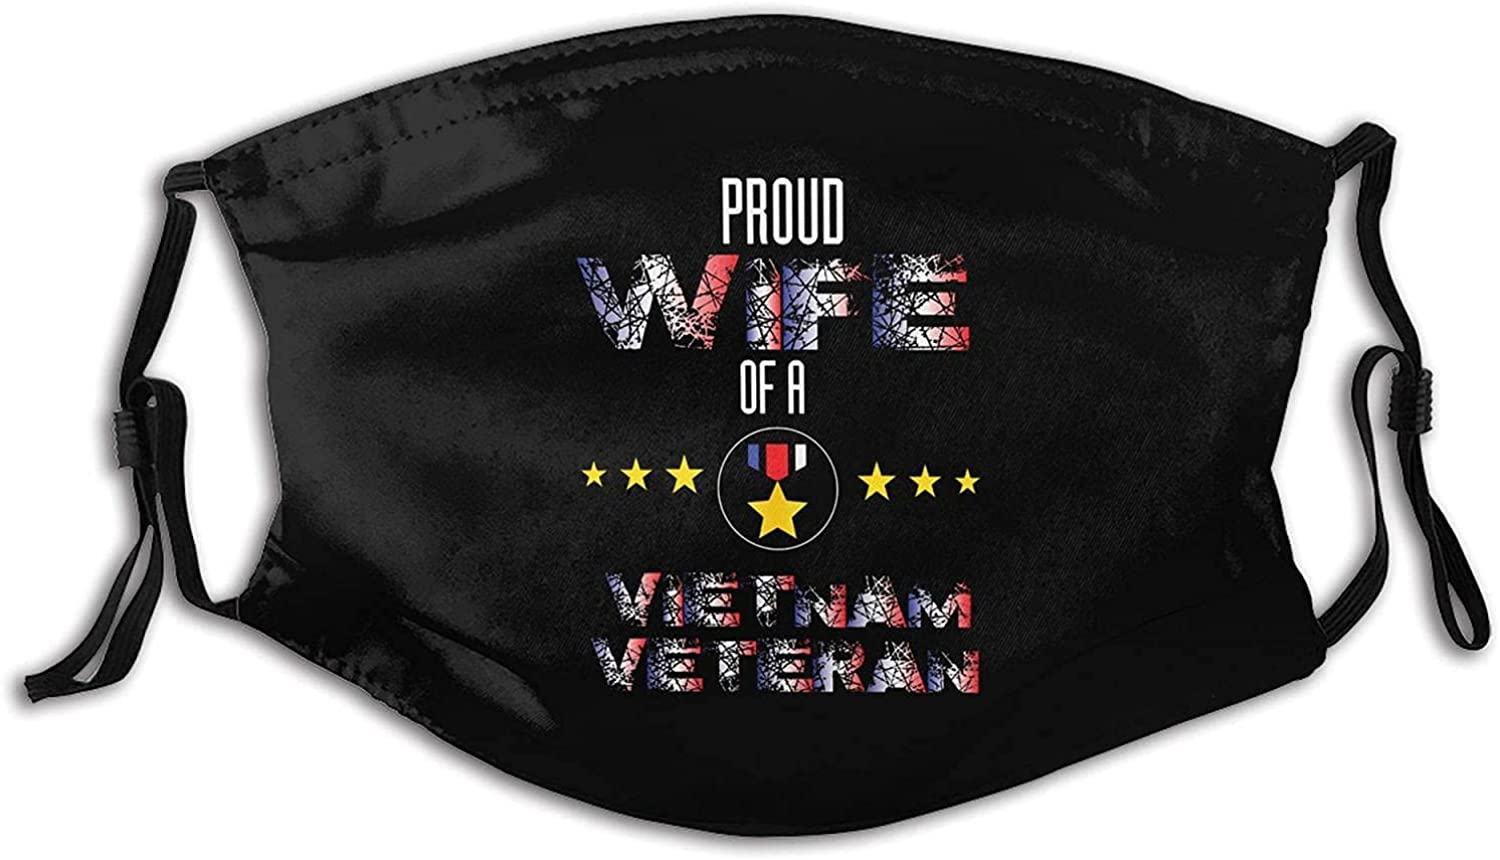 Proud Wife of A Vietnam Veteran Face Mask, with 2 Carbon Filter Bandanas Reusable Washable Fabric Breathable Adjustable Balaclava for Men Women